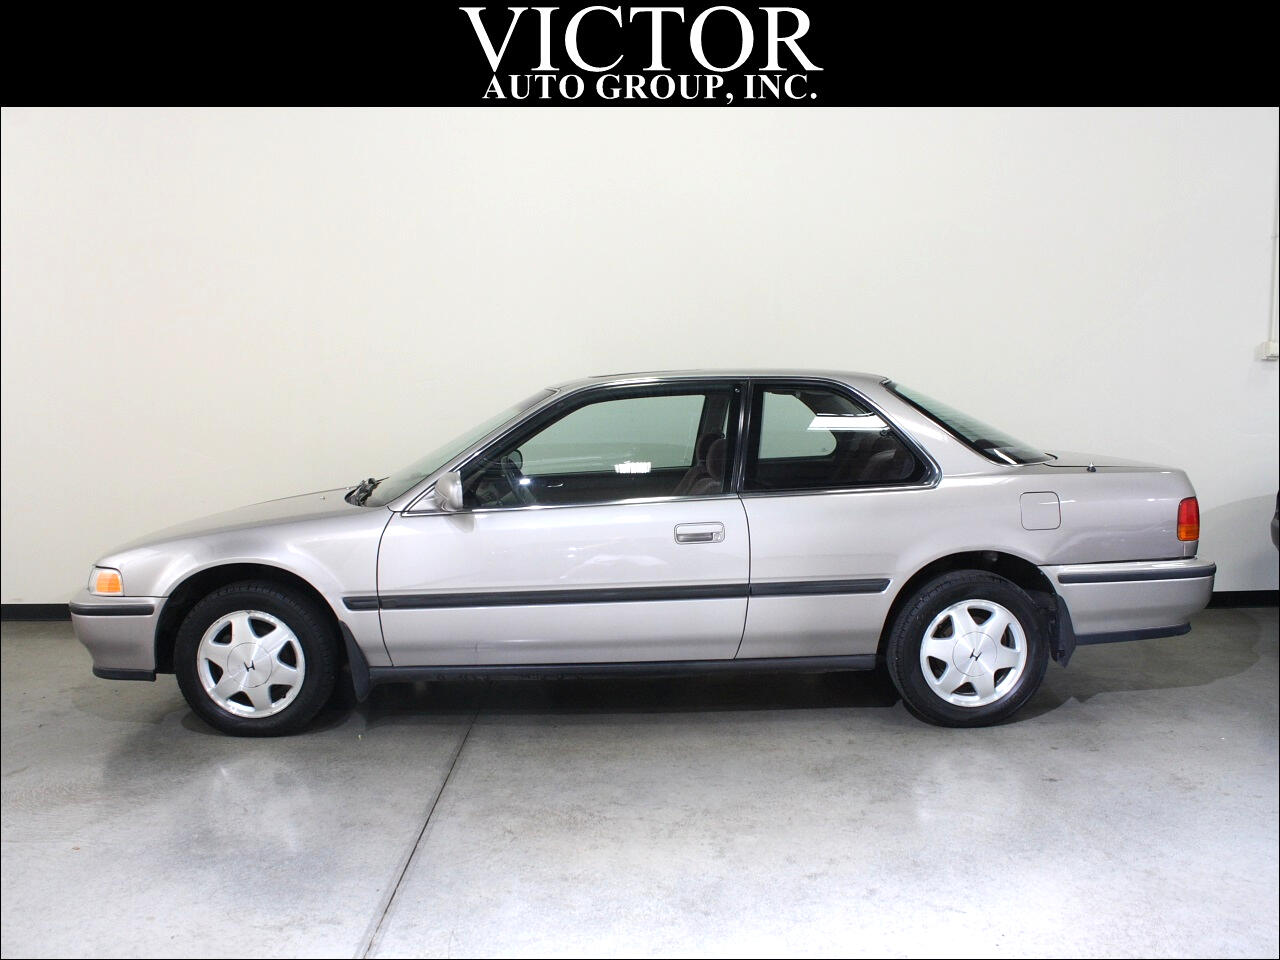 1993 Honda Accord EX coupe